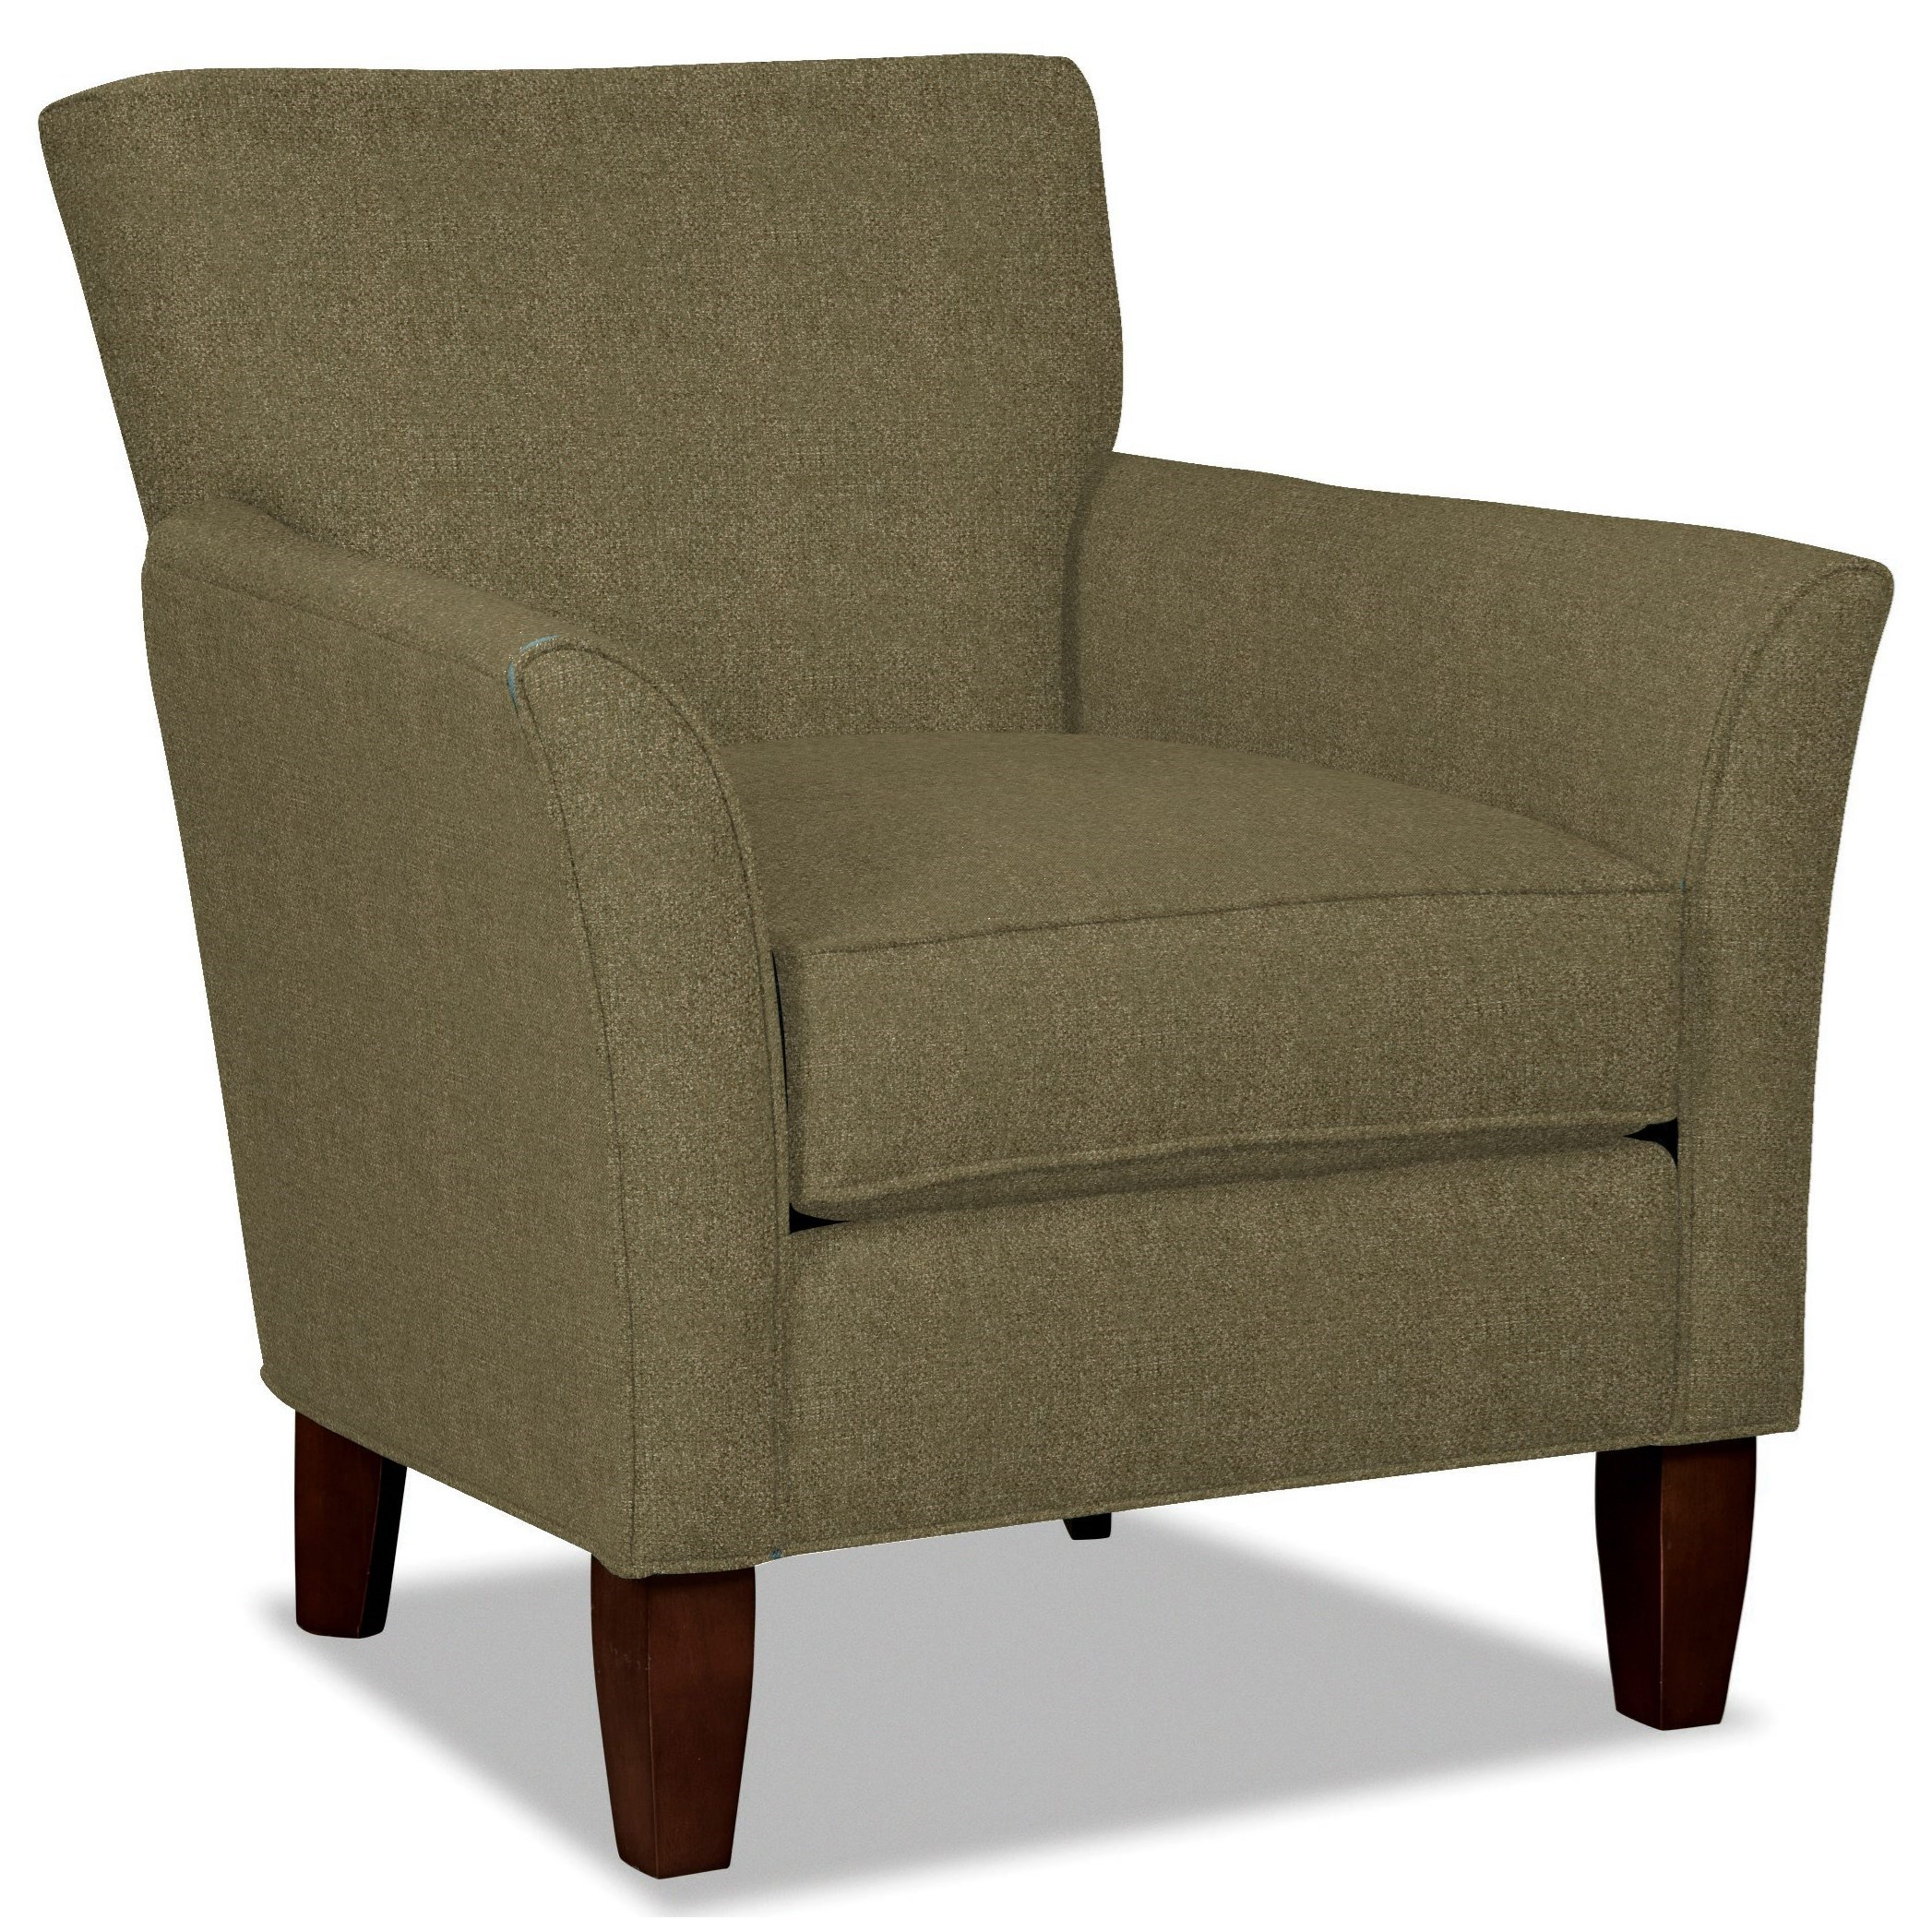 Craftmaster 060110 Accent Chair - Item Number: 060110-BAHAMA-21